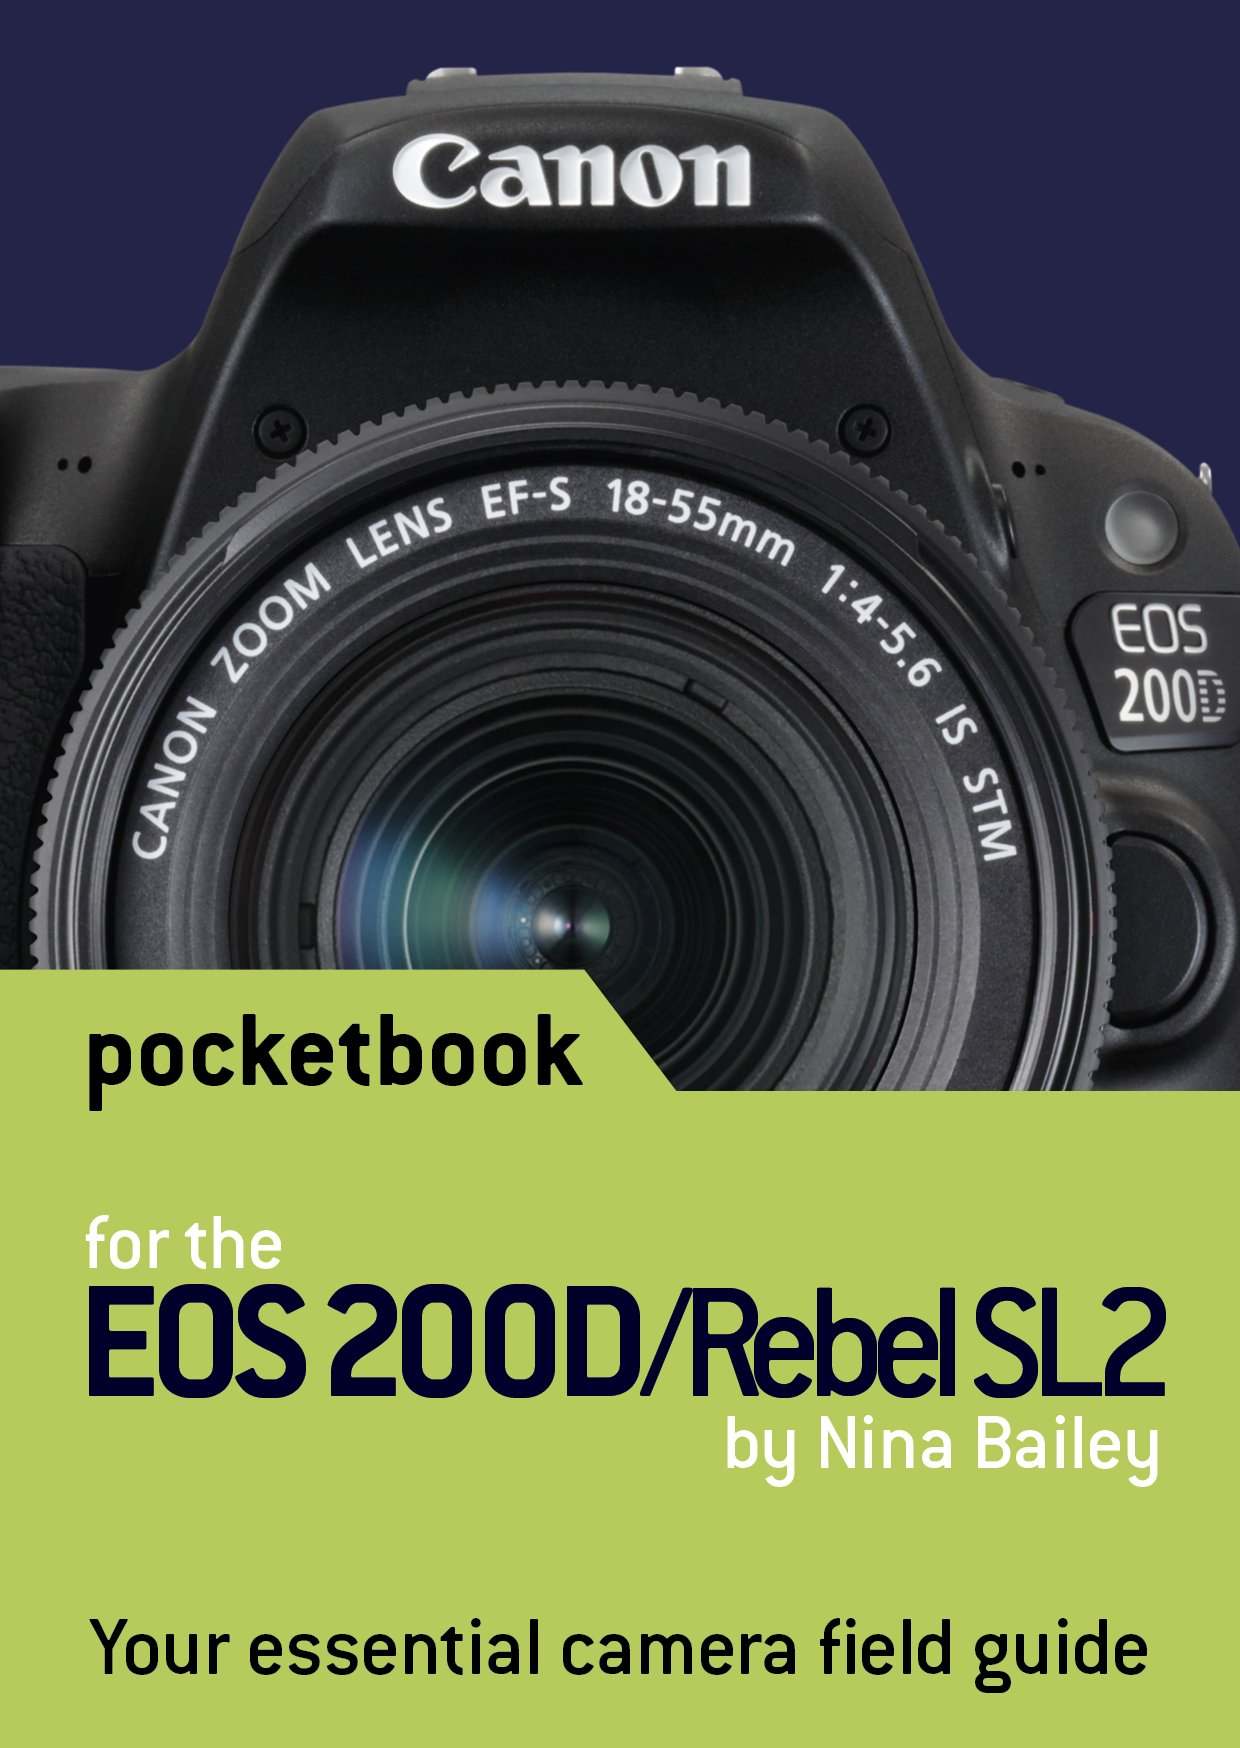 Canon EOS 200D / Rebel SL2 Pocketbook: camera field guide: Amazon ...